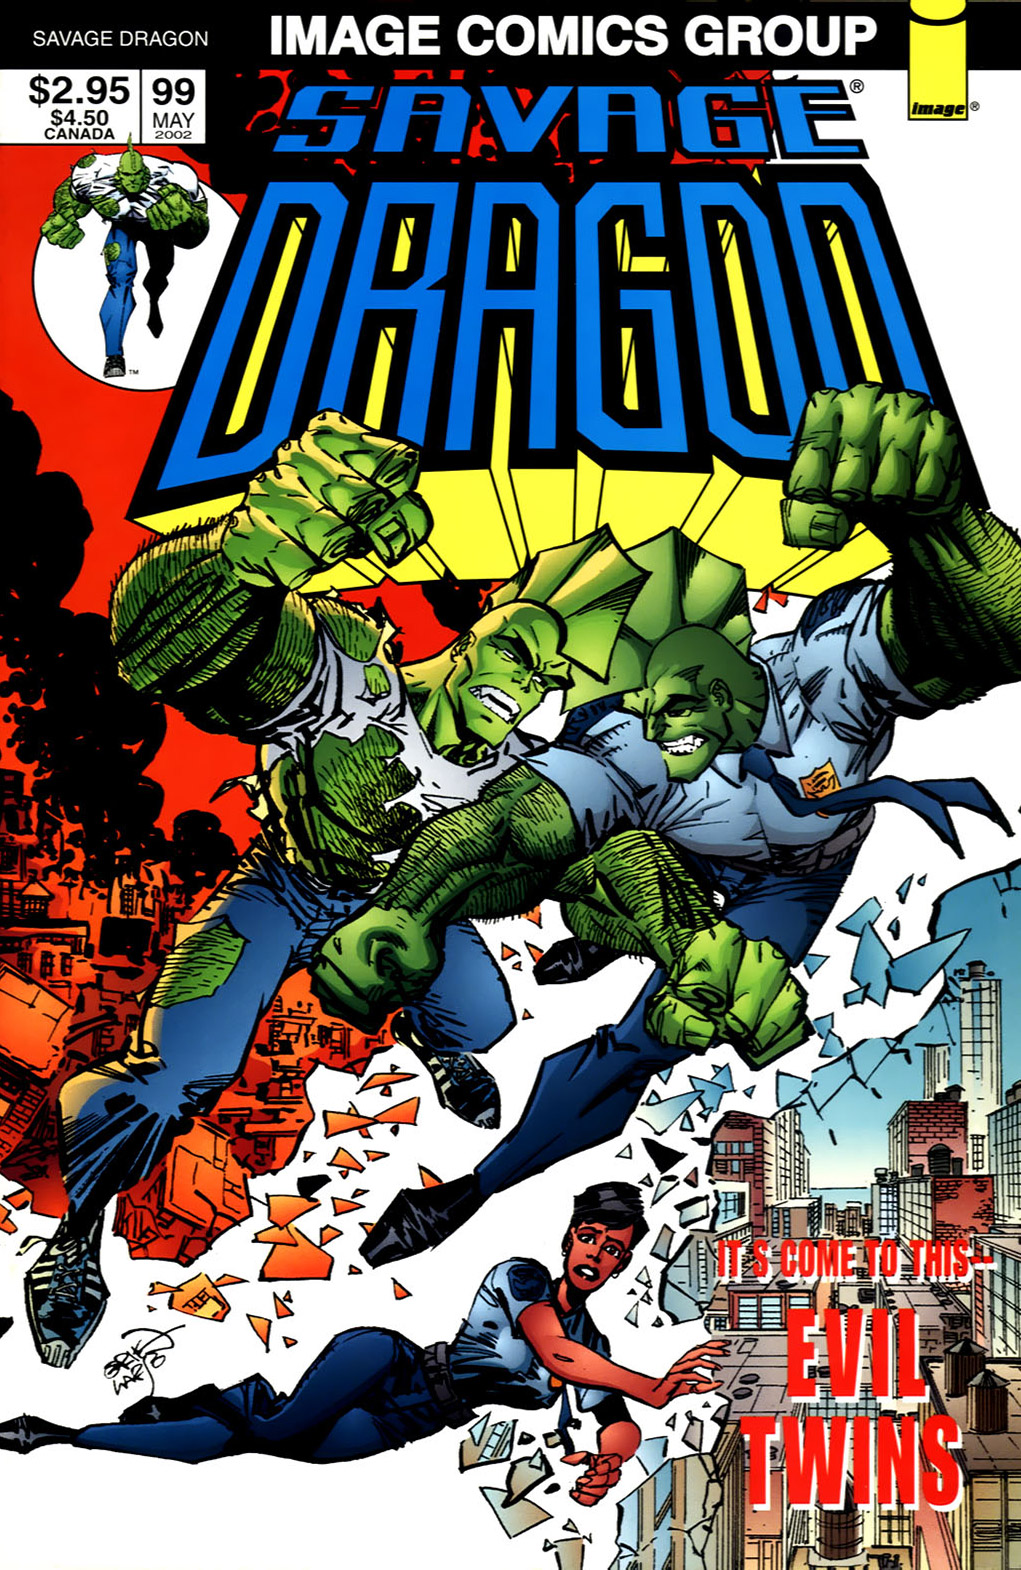 Cover Savage Dragon Vol.2 #99